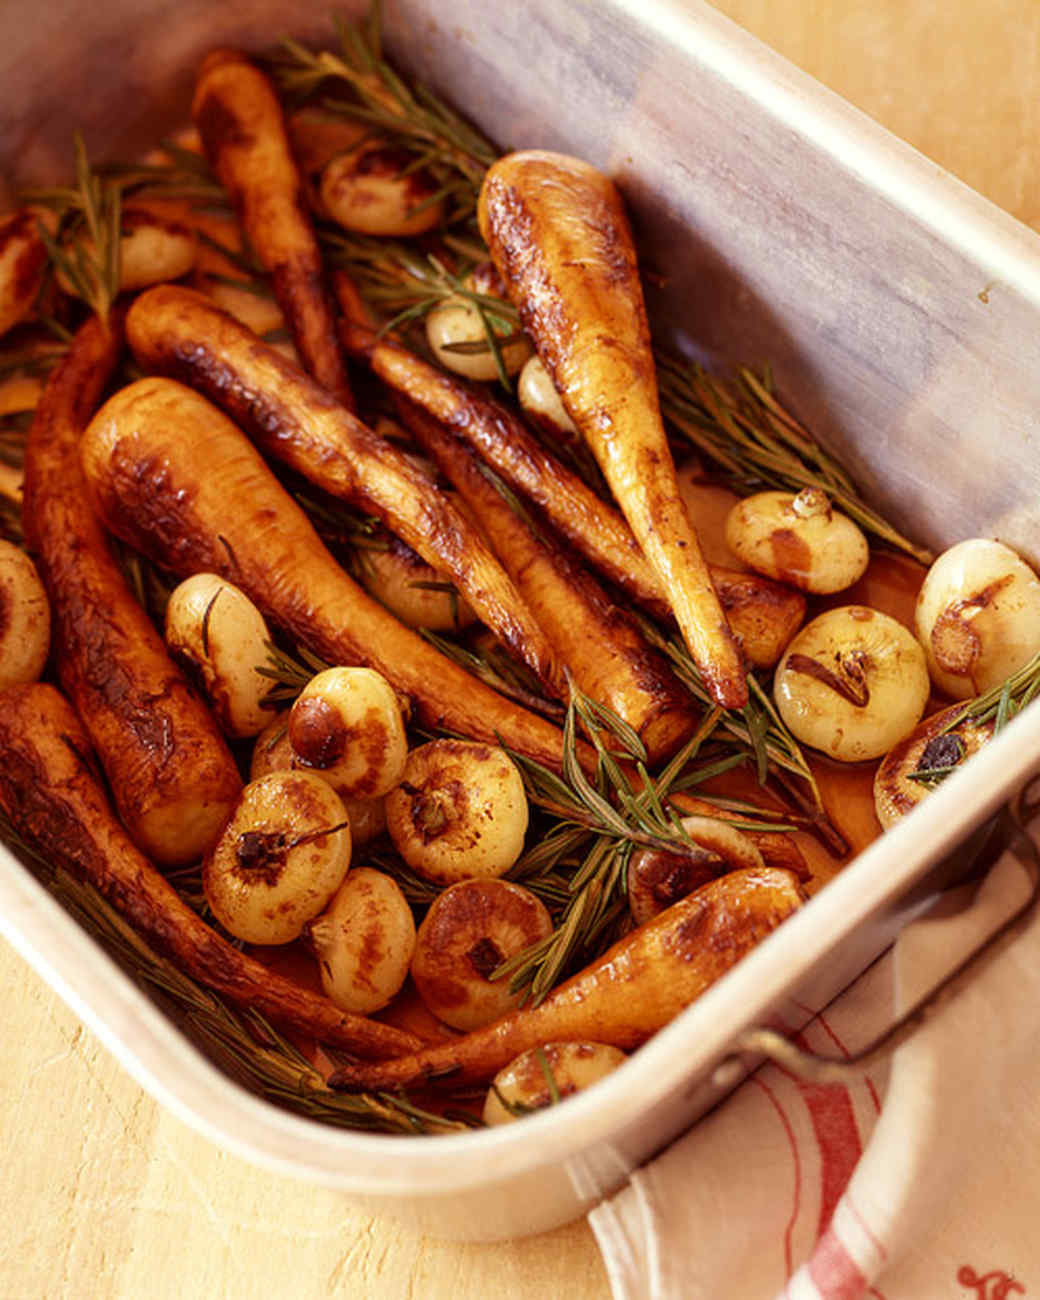 Roasted Parsnips and Onions